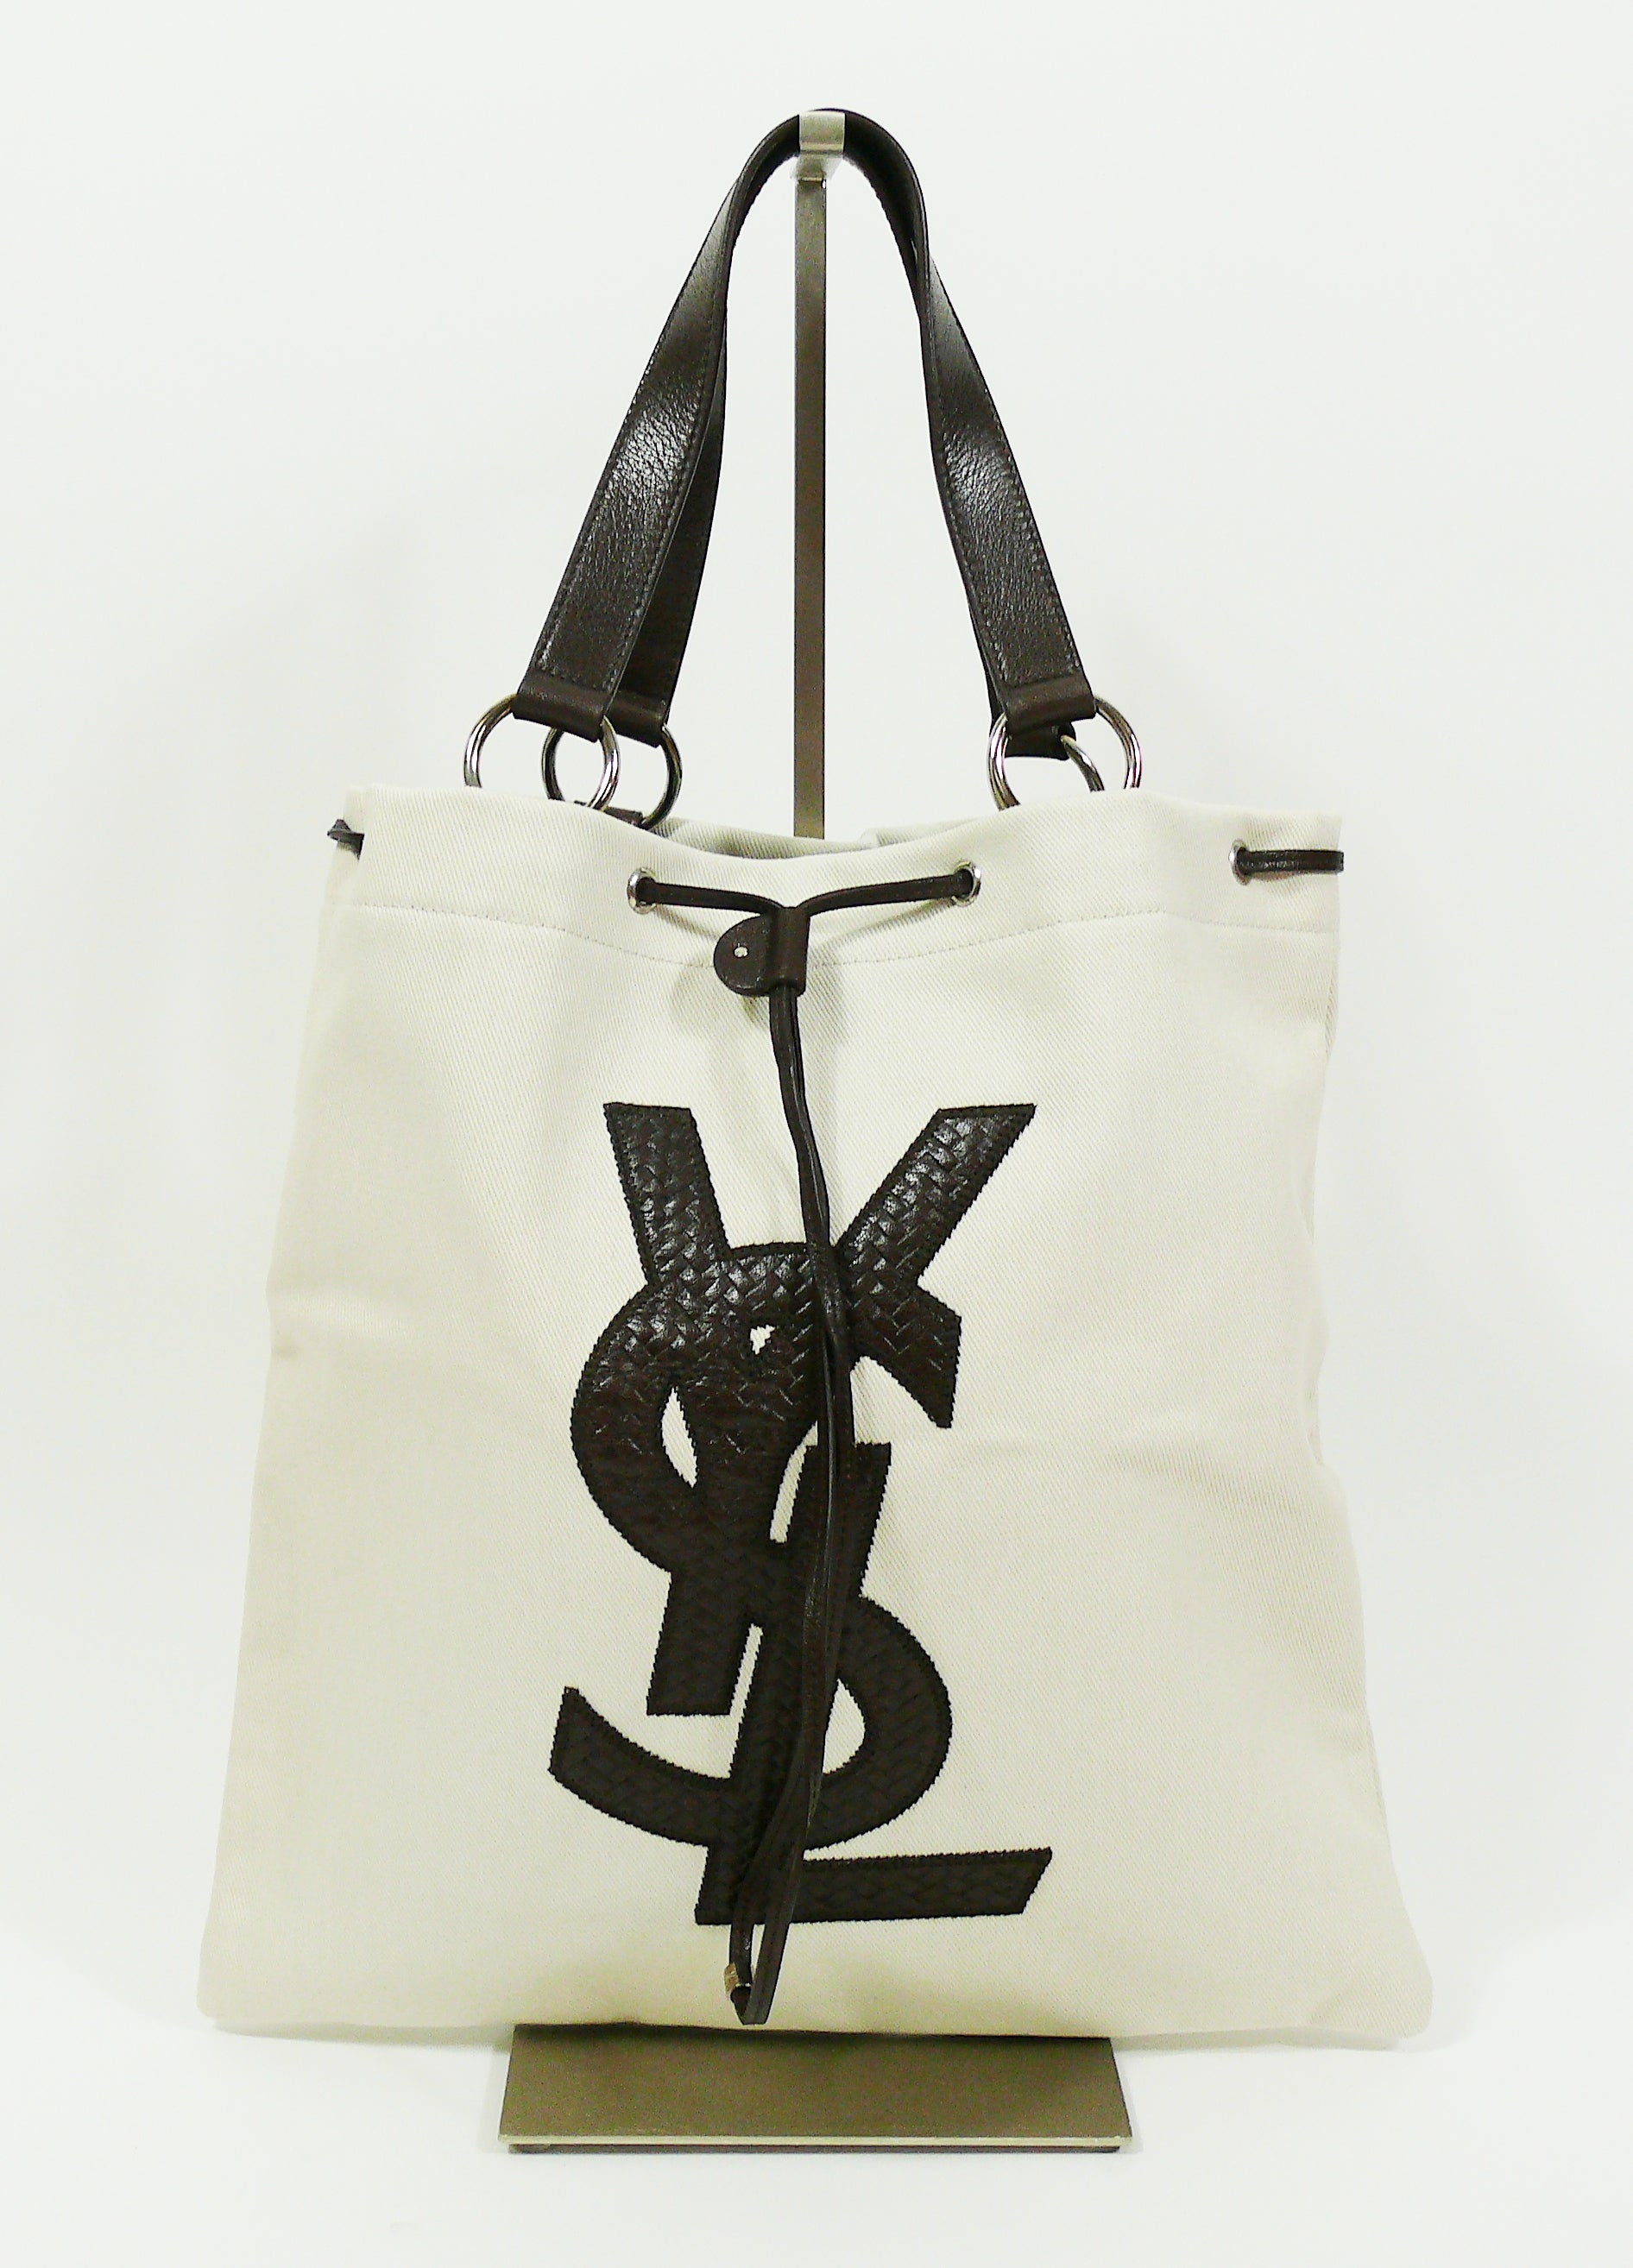 Yves Saint Laurent Canvas YSL Tote Bag at 1stdibs 3151117191e75